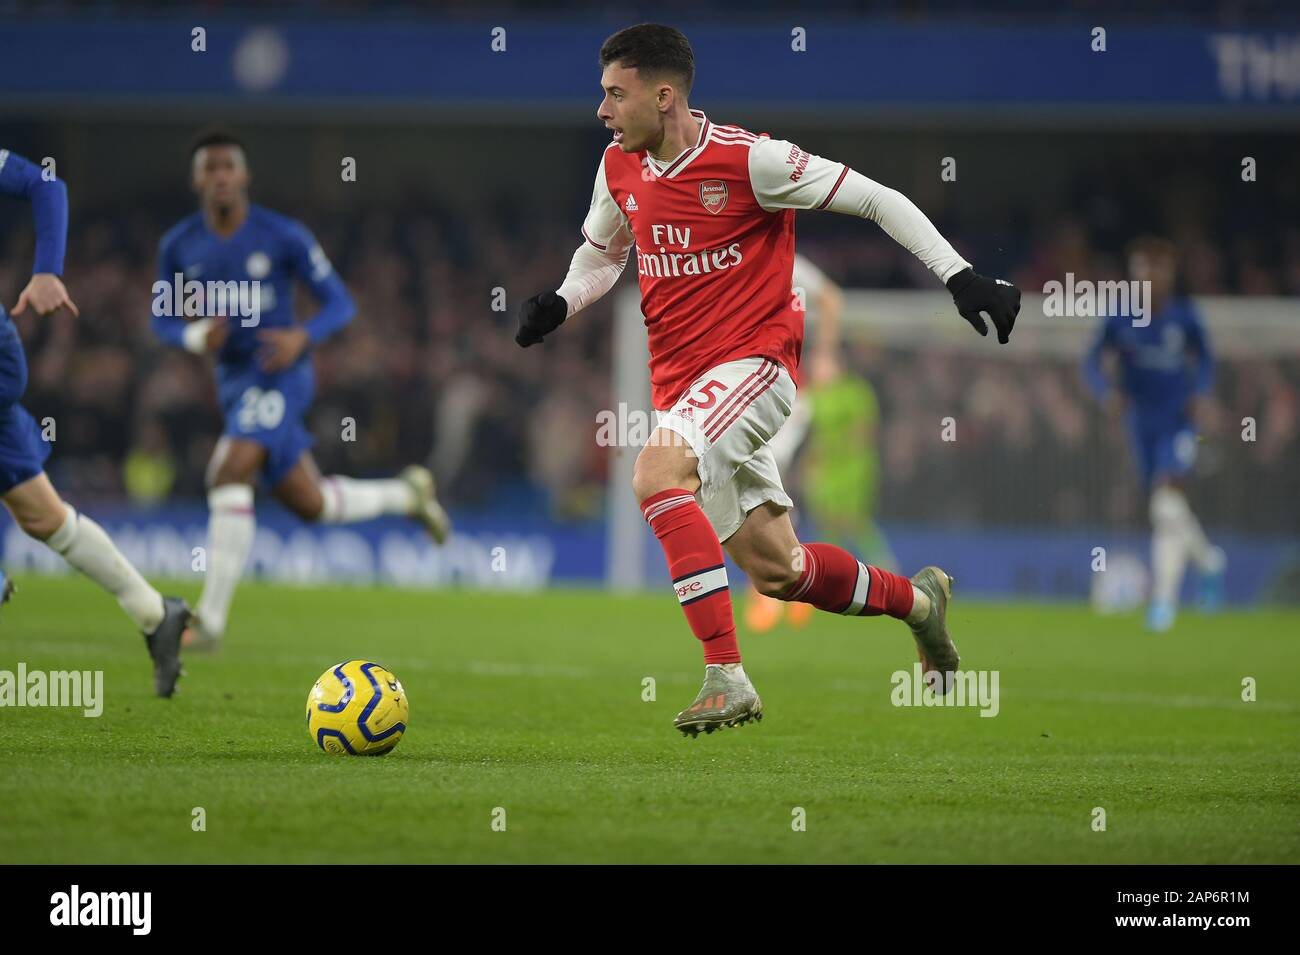 """London, UK. 21st Jan, 2020. Gabriel Martinelli of Arsenal during the Chelsea vs Arsenal Premier League match at Stamford Bridge London 21st November 2020-EDITORIAL USE ONLY No use with unauthorised audio, video, data, fixture lists (outside the EU), club/league logos or """"live"""" services. Online in-match use limited to 45 images ( 15 in extra time). No use to emulate moving images. No use in betting, games or single club/league/player publications/services- Credit: MARTIN DALTON/Alamy Live News Stock Photo"""